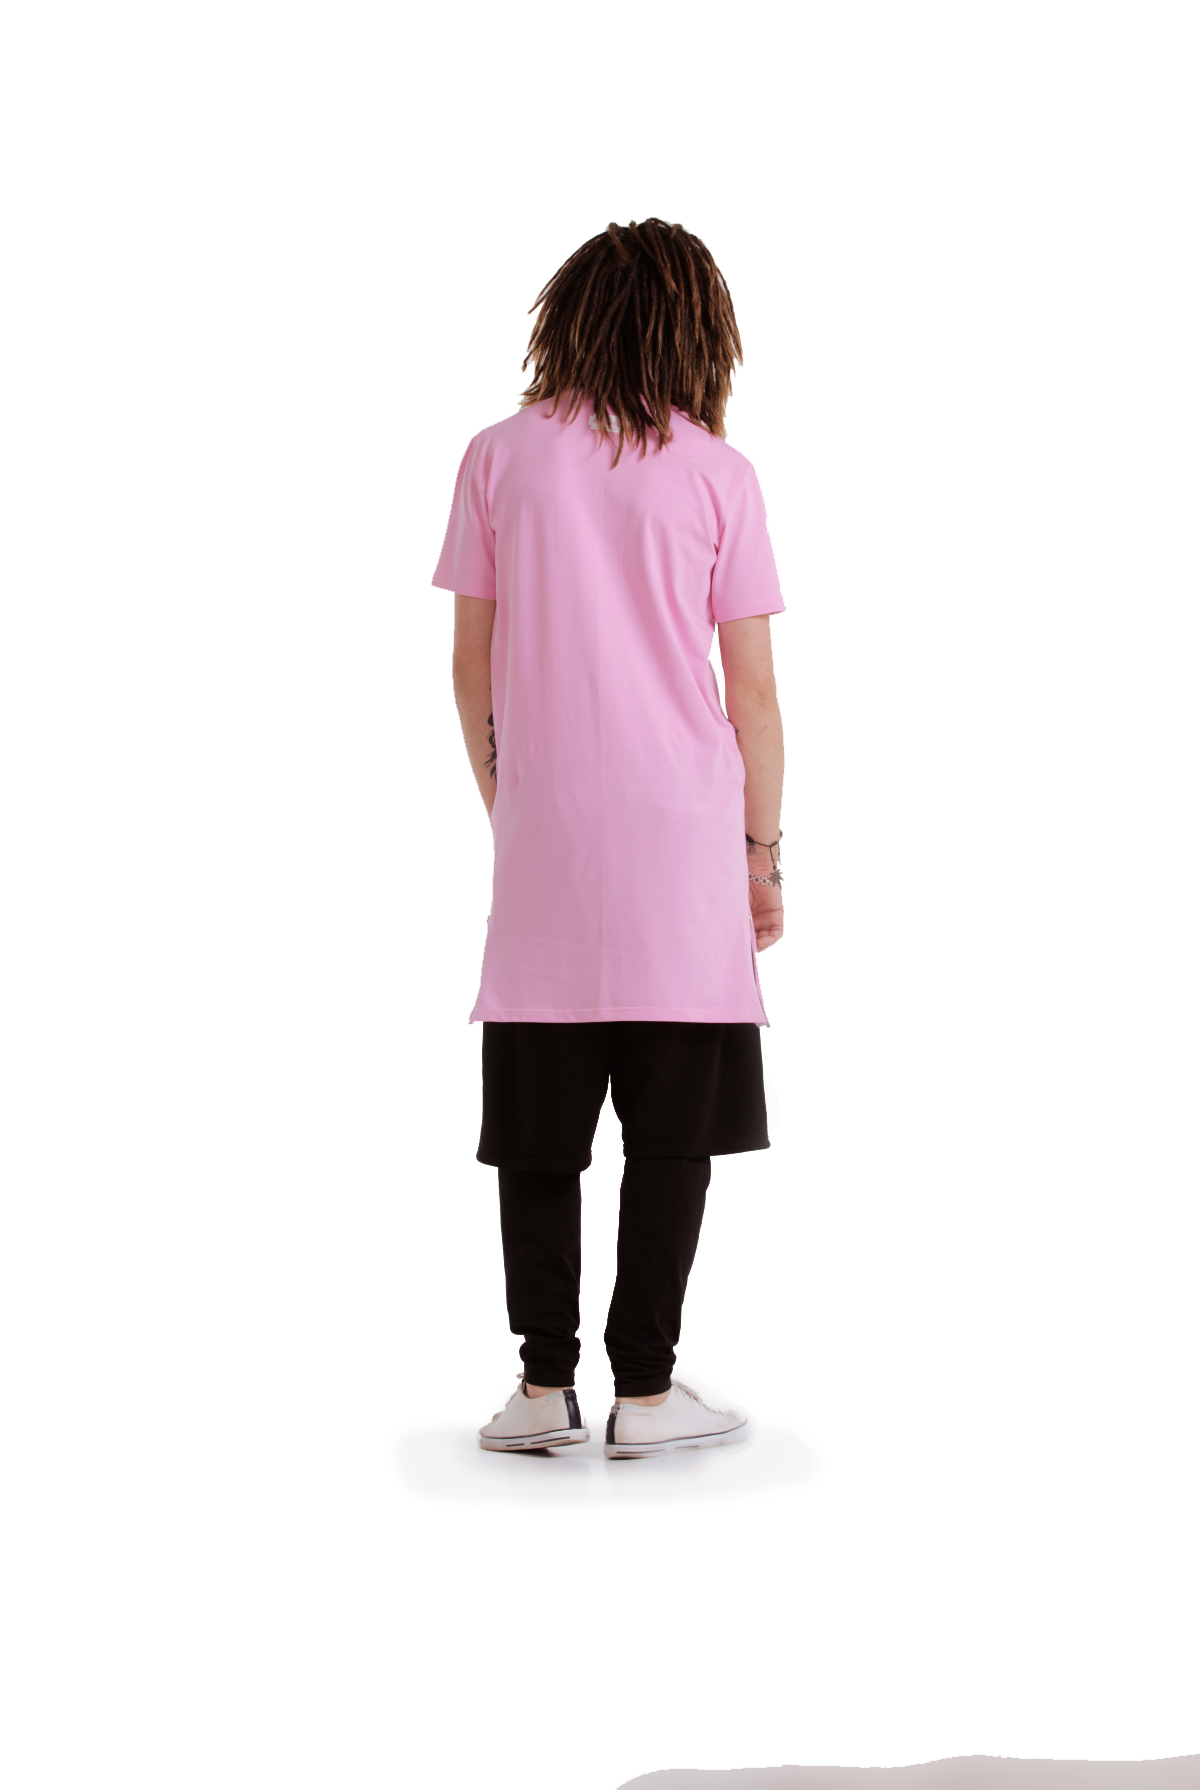 Techno Being T-shirt [Pink]